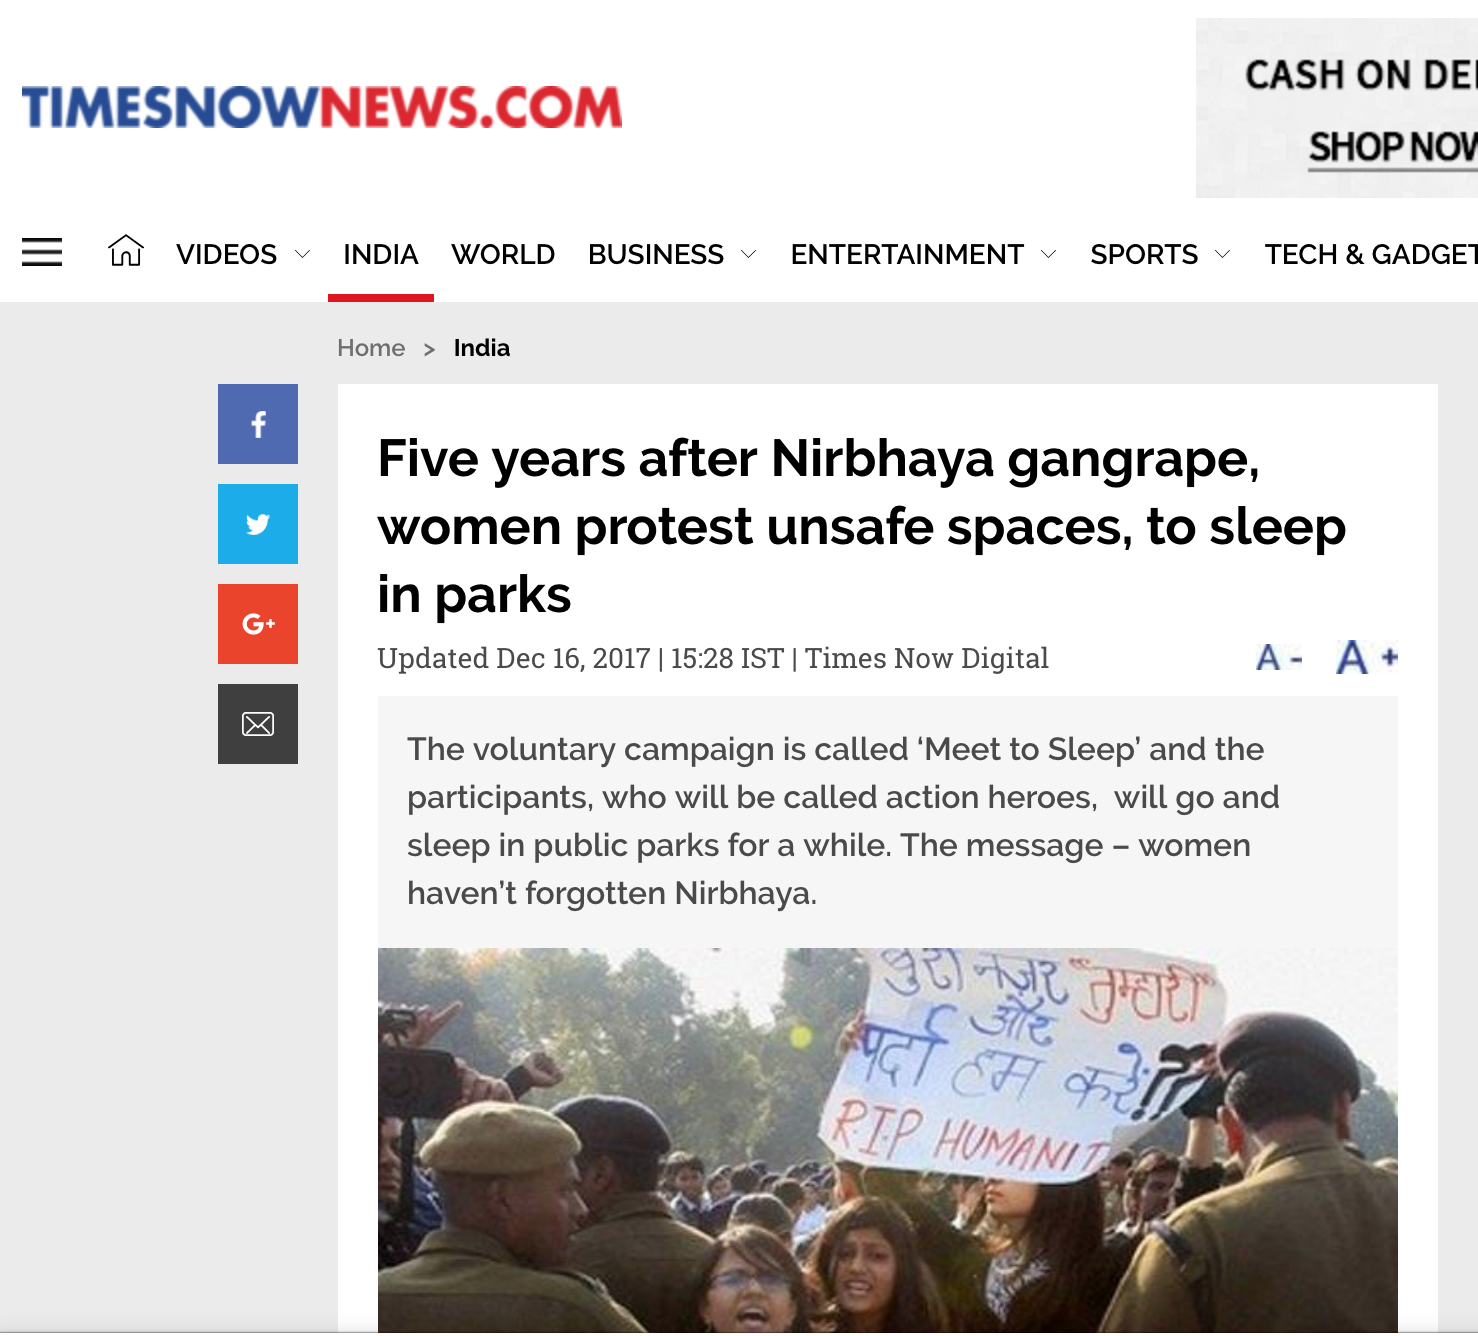 Times Now News, 2017